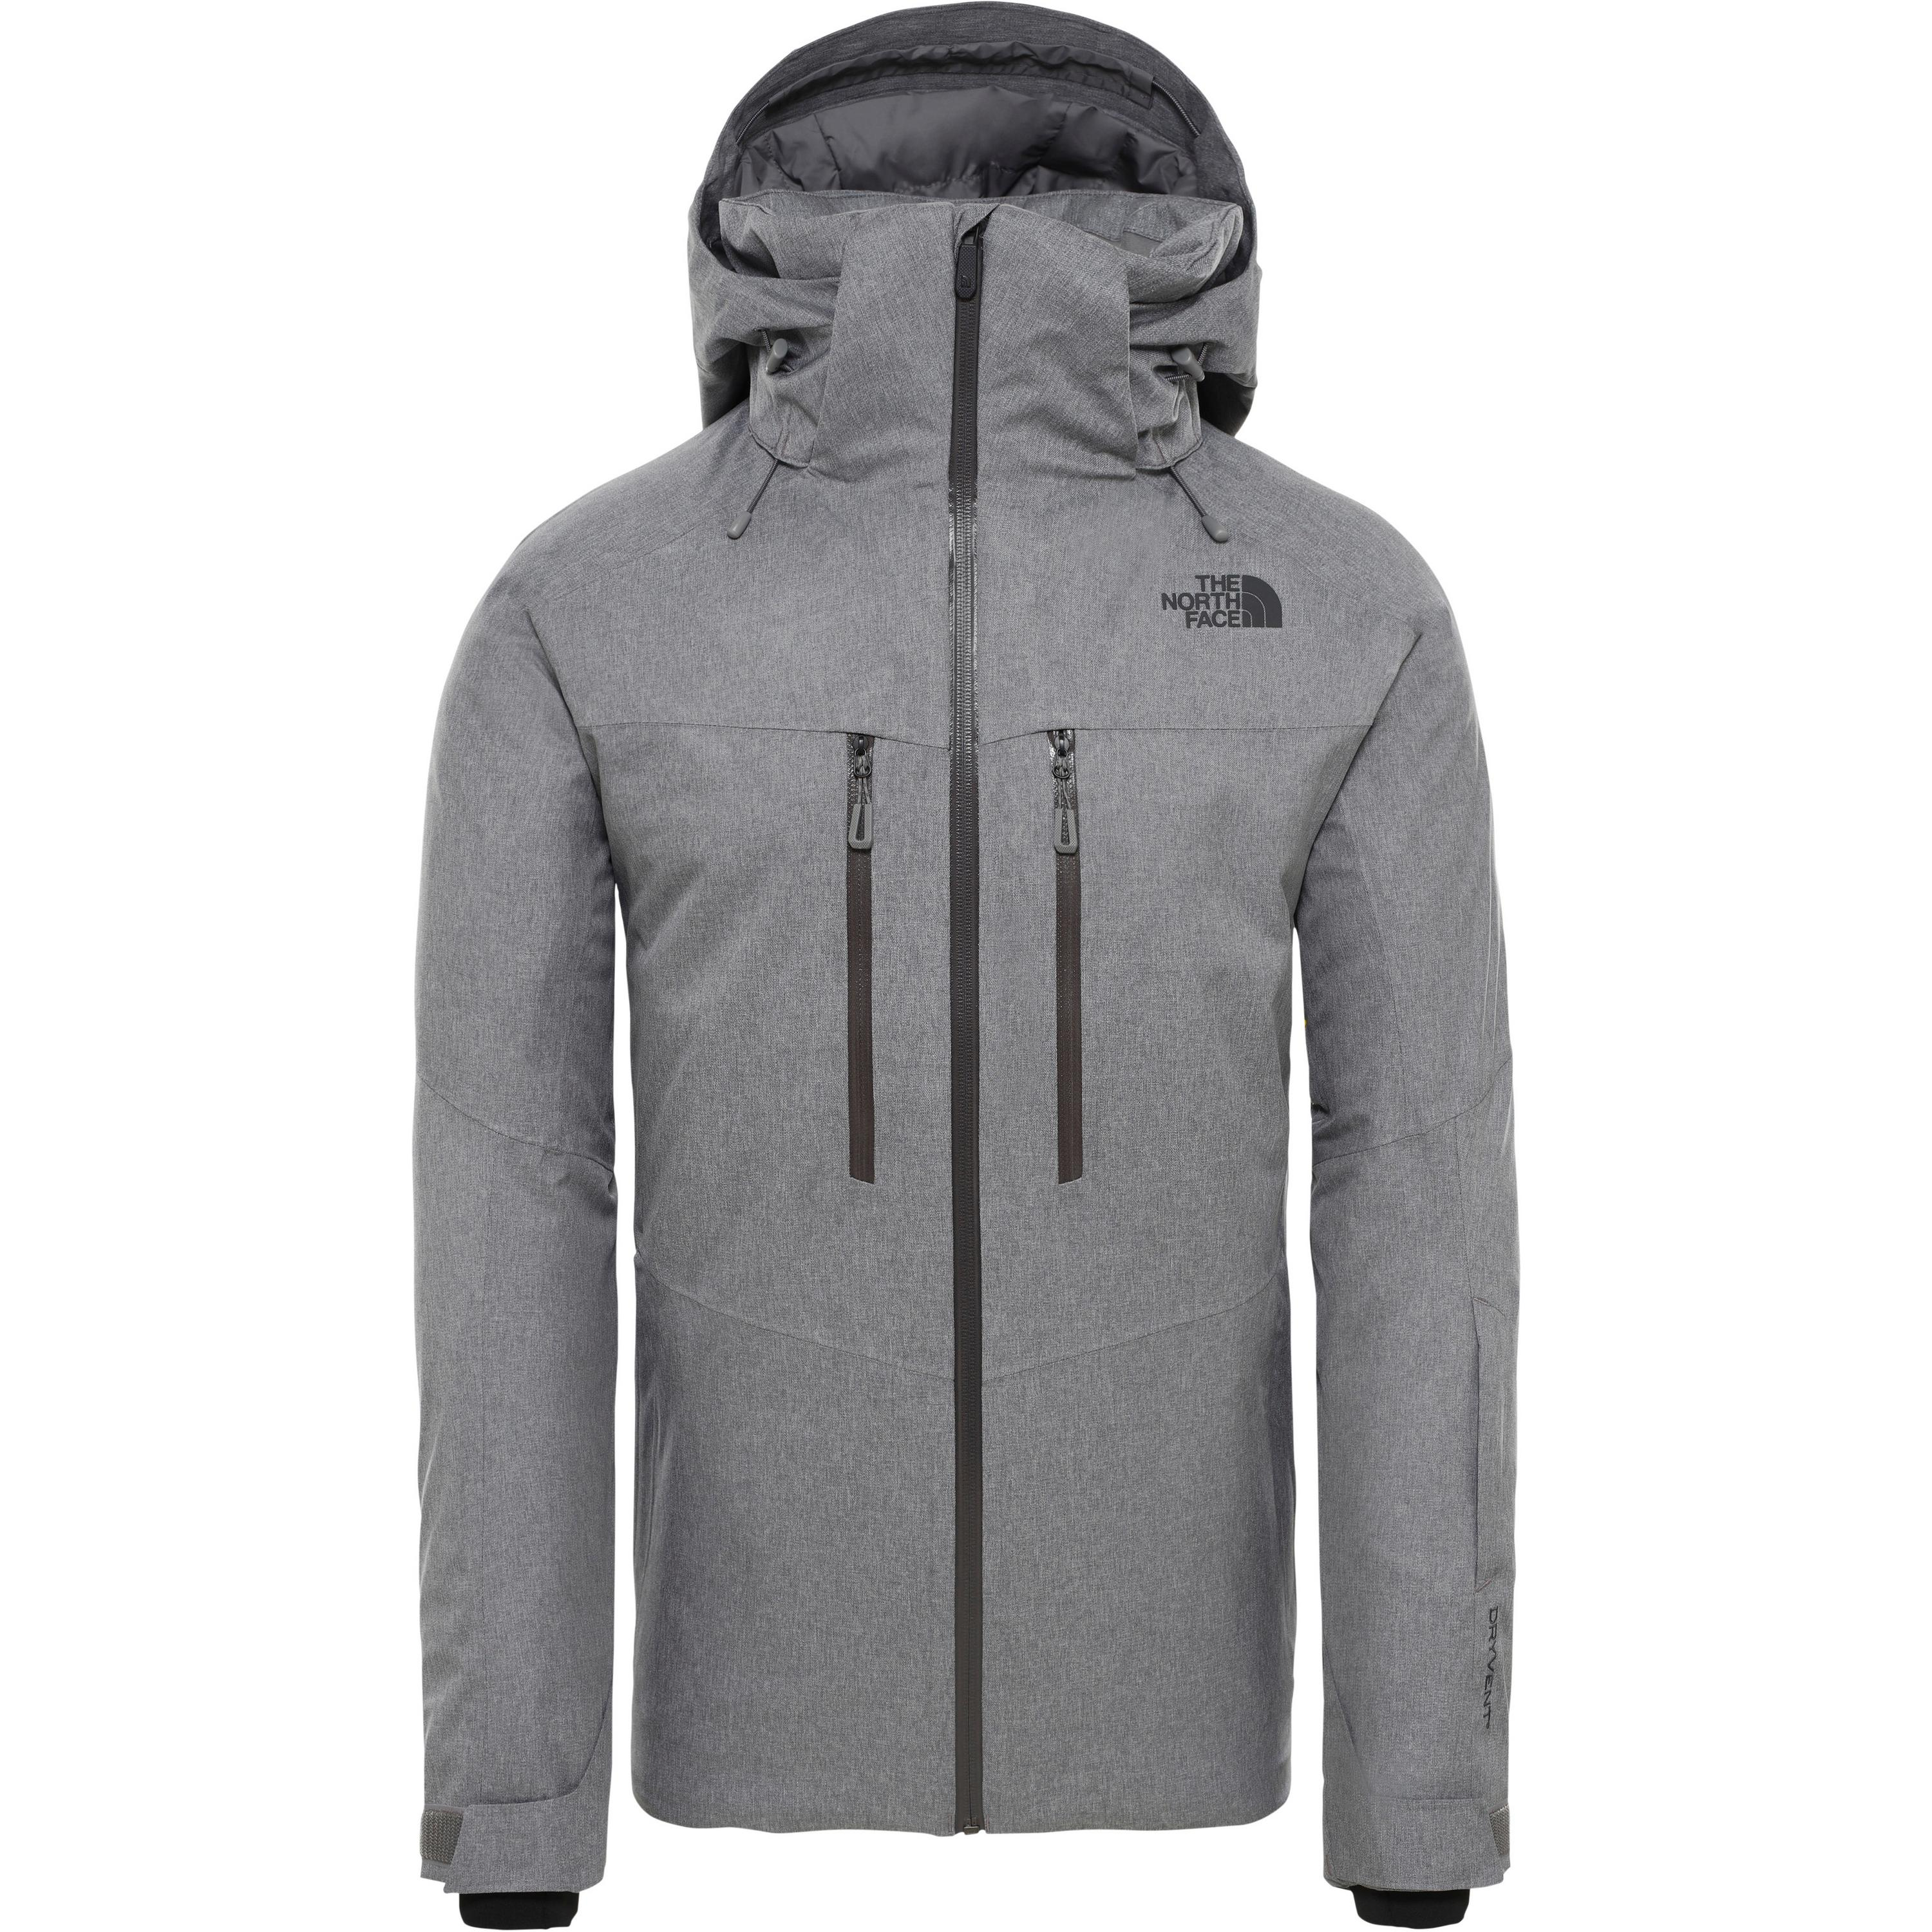 The North Face Chakal Skijacke Herren (grau, M)